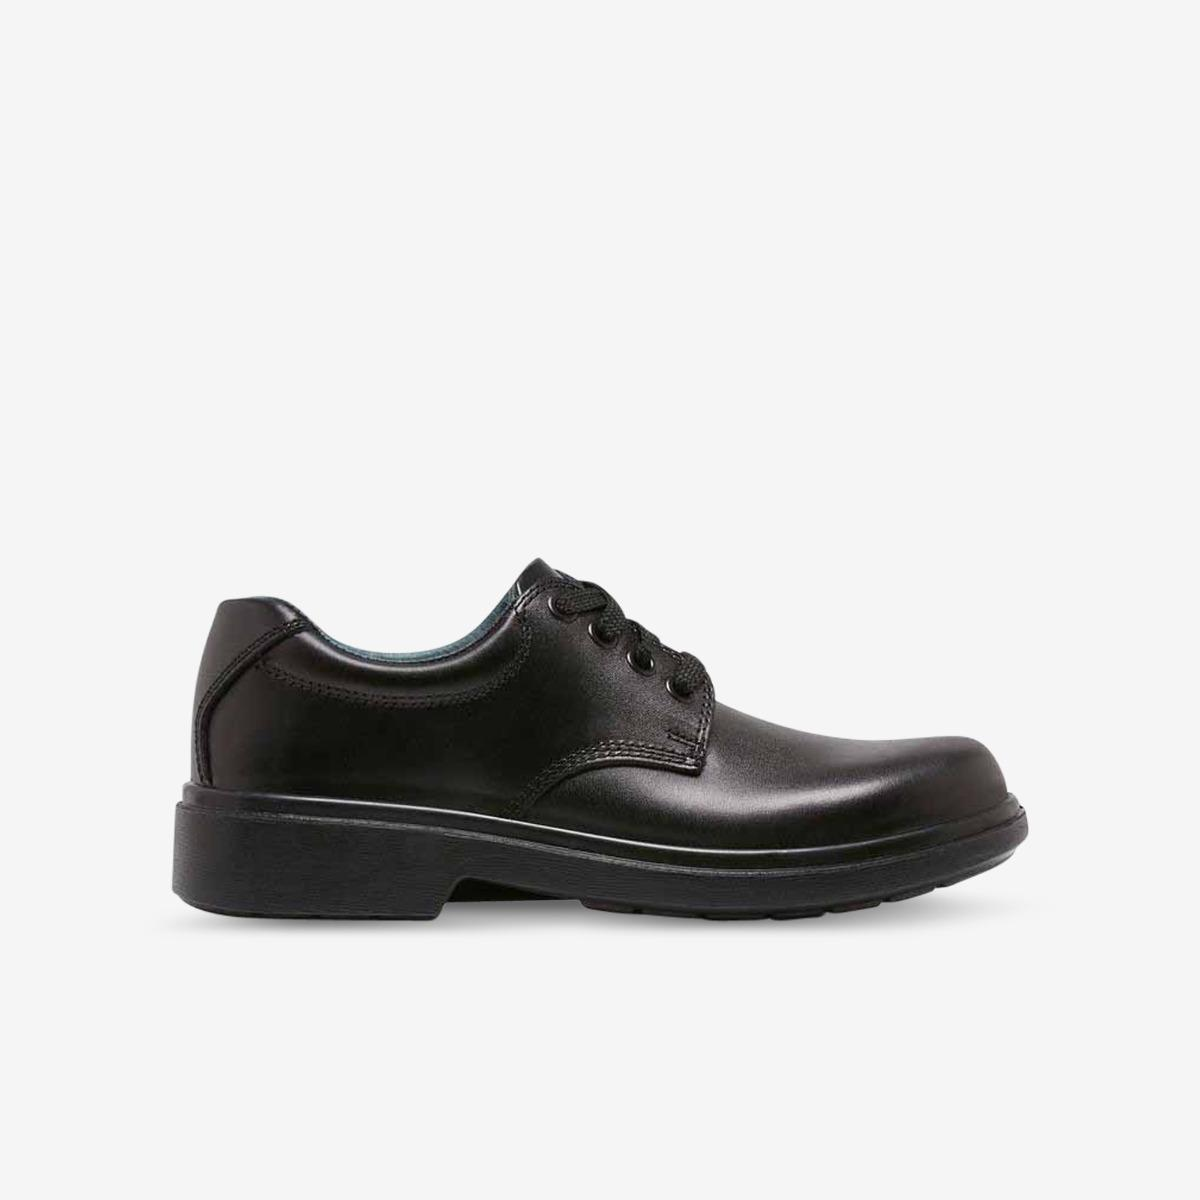 Shop Clarks Daytona